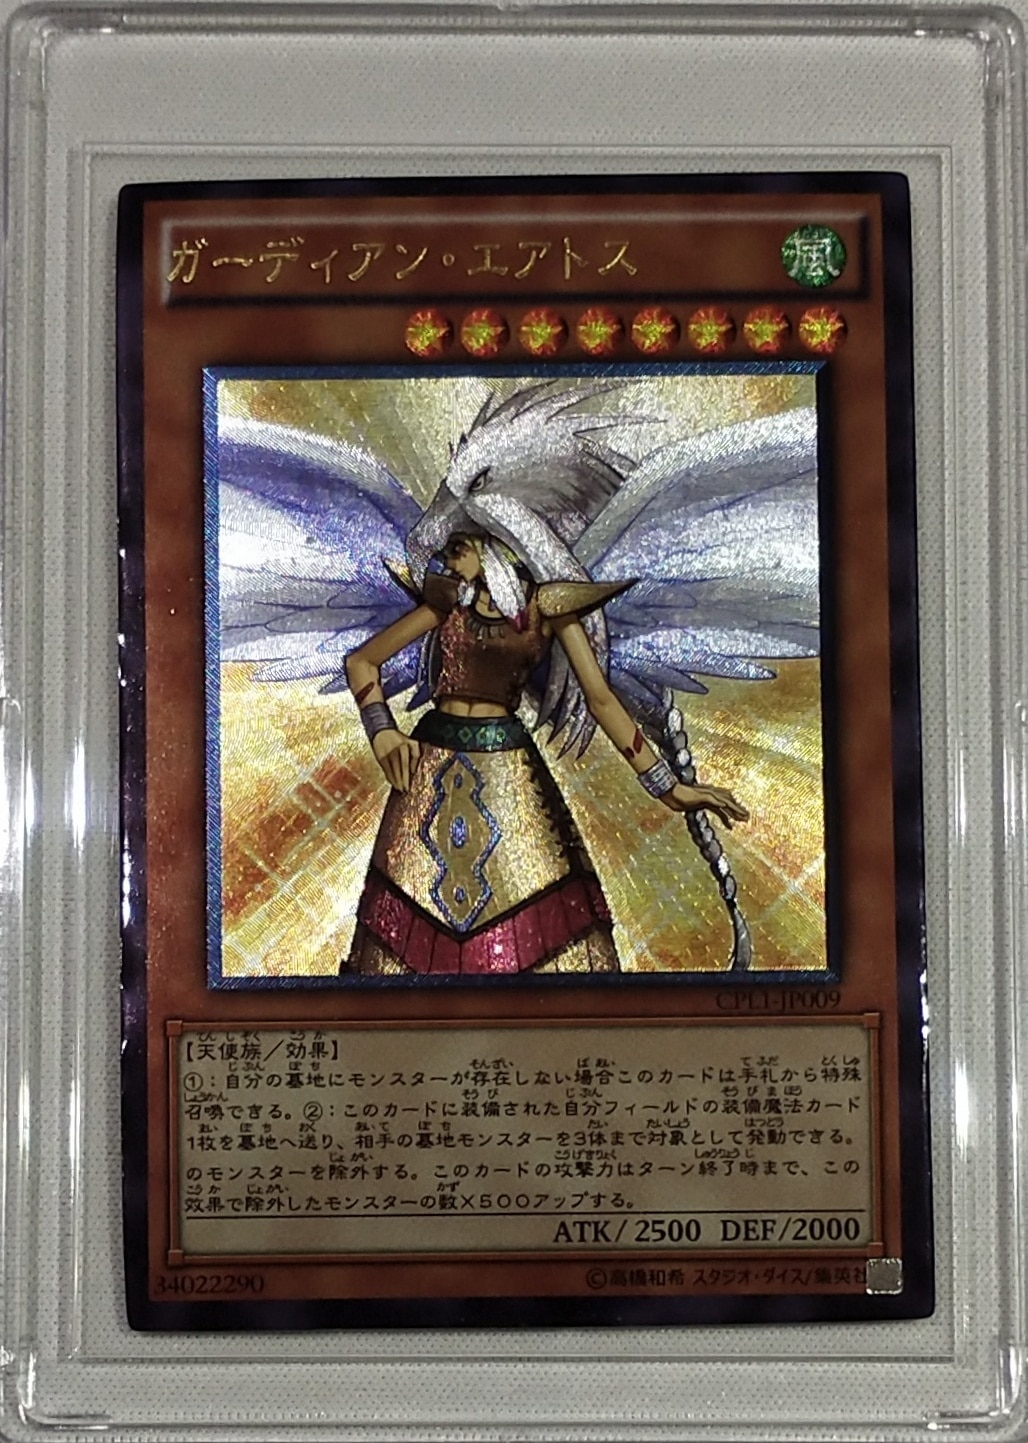 Yu Gi Oh Guardian Eatos DIY Toys Hobbies Hobby Collectibles Game Collection Anime Cards